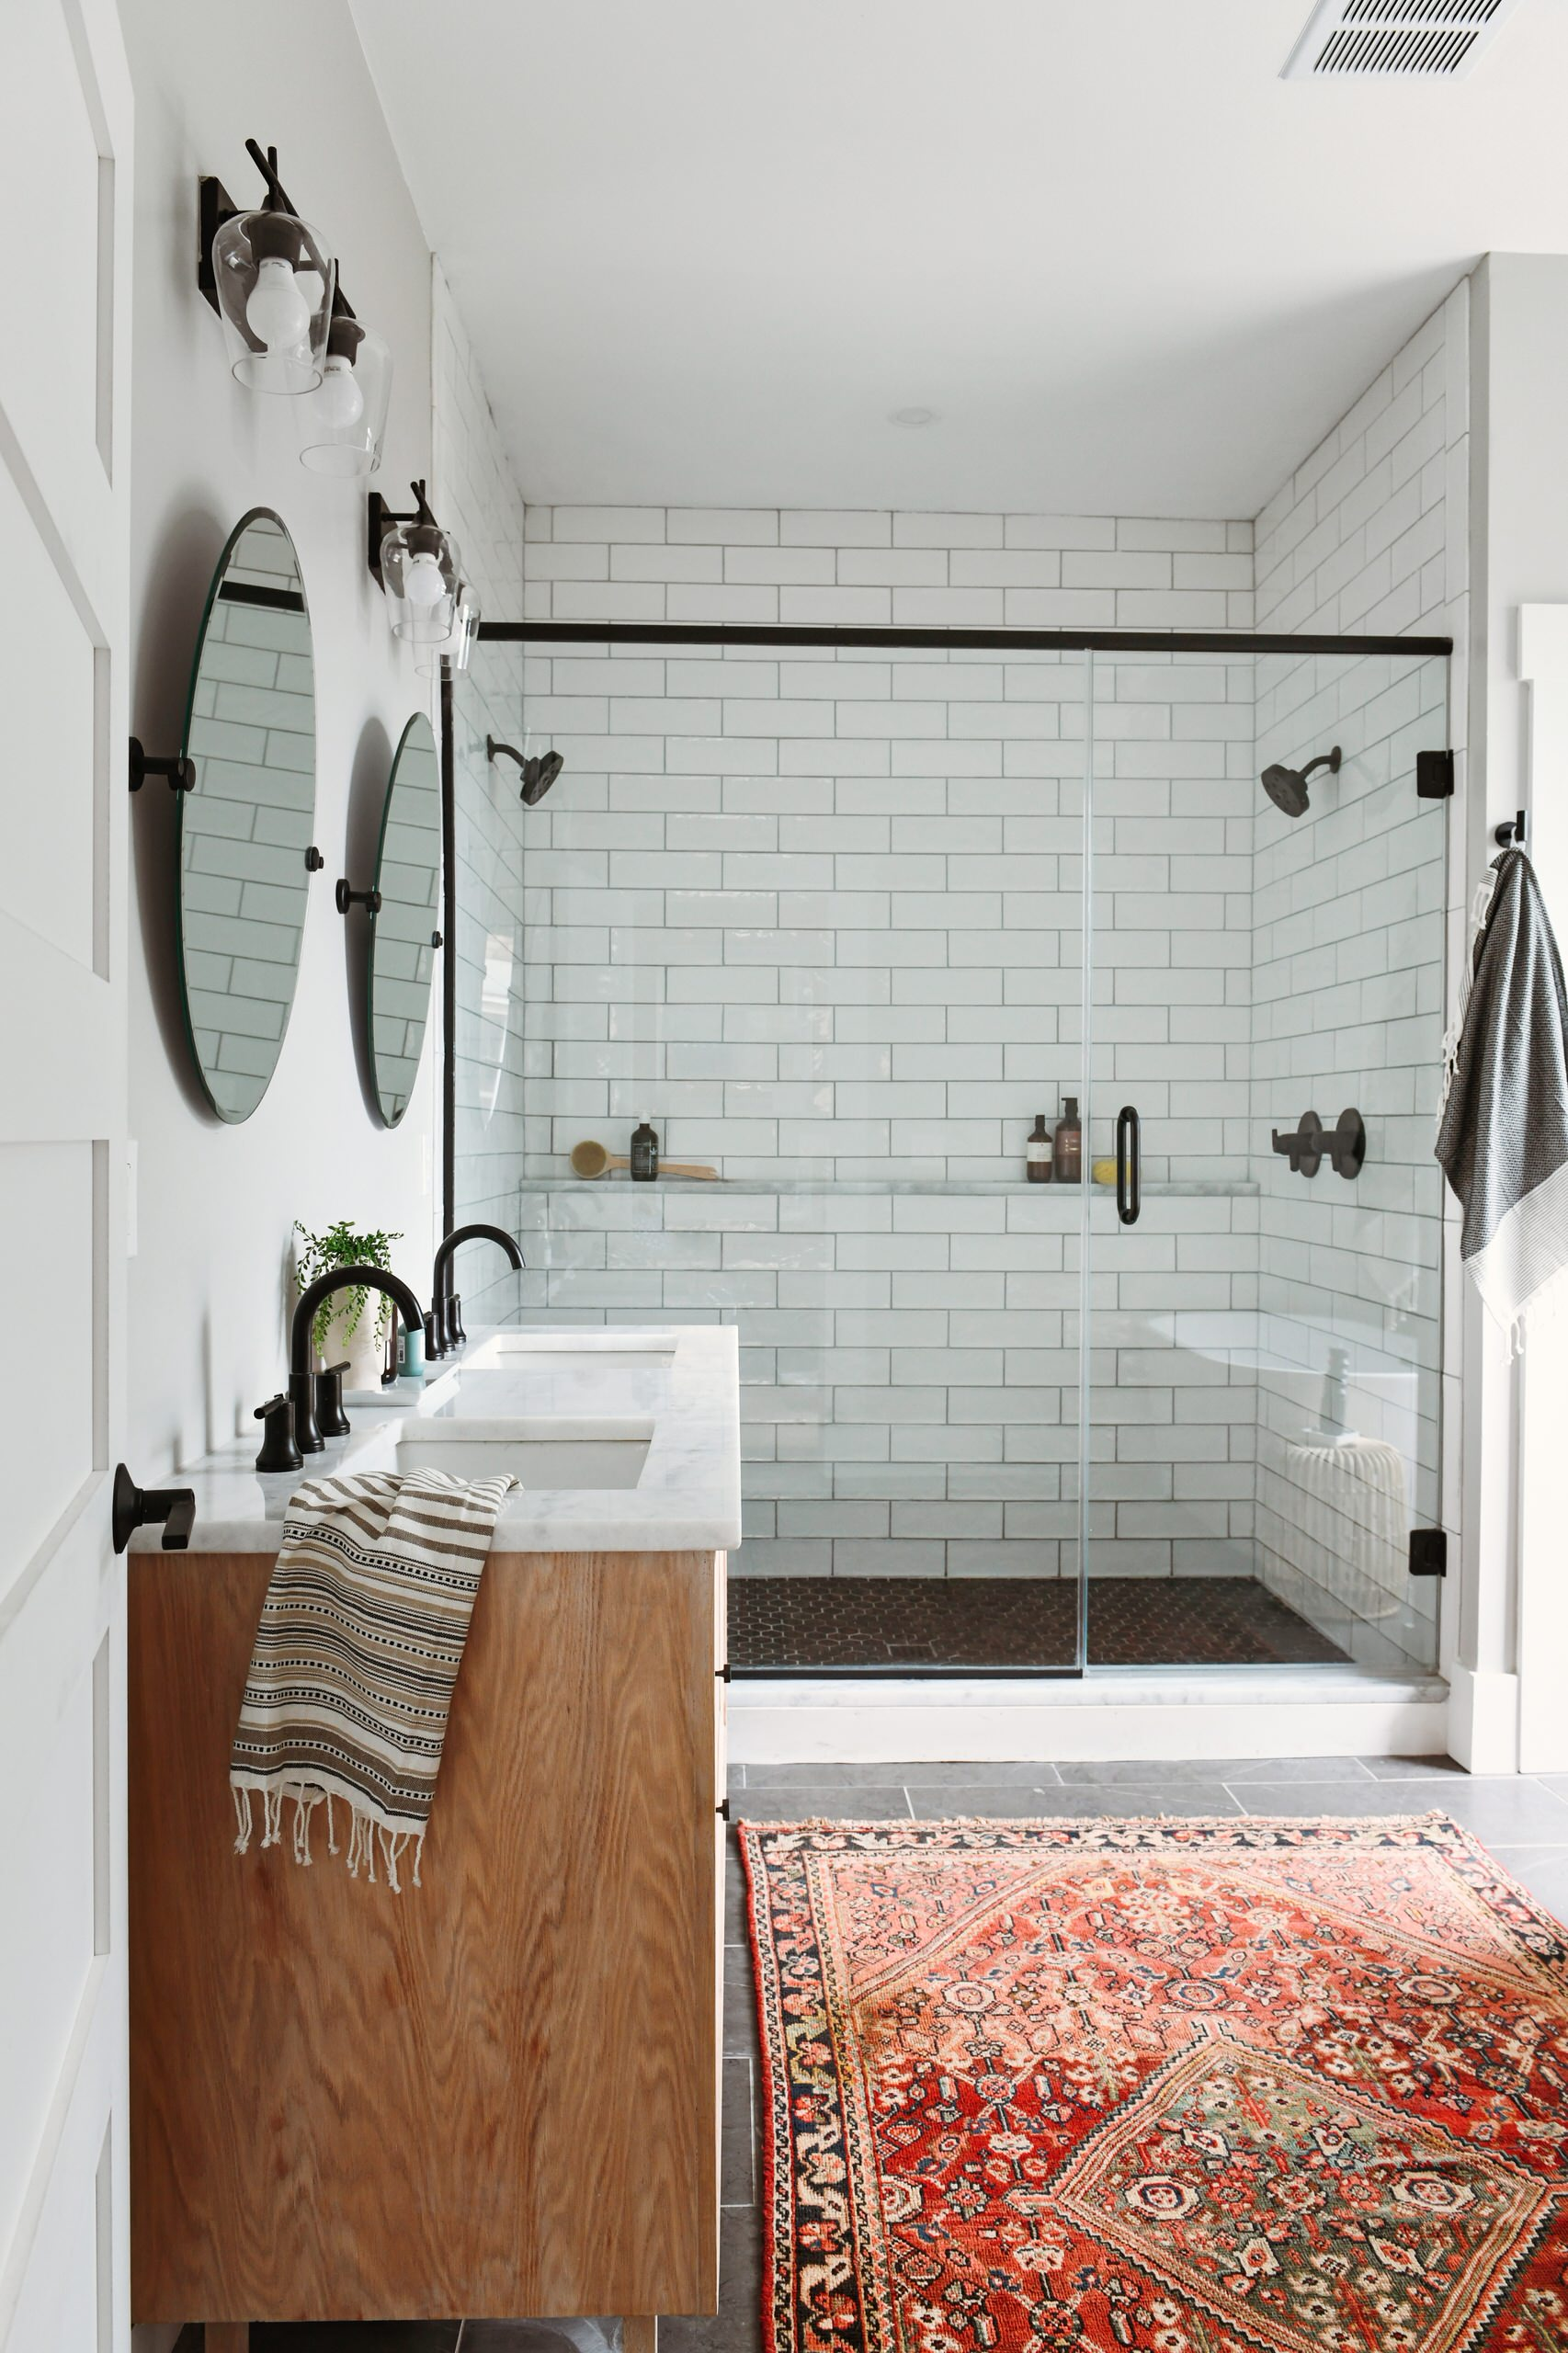 75 beautiful small subway tile bathroom pictures ideas may 2021 houzz